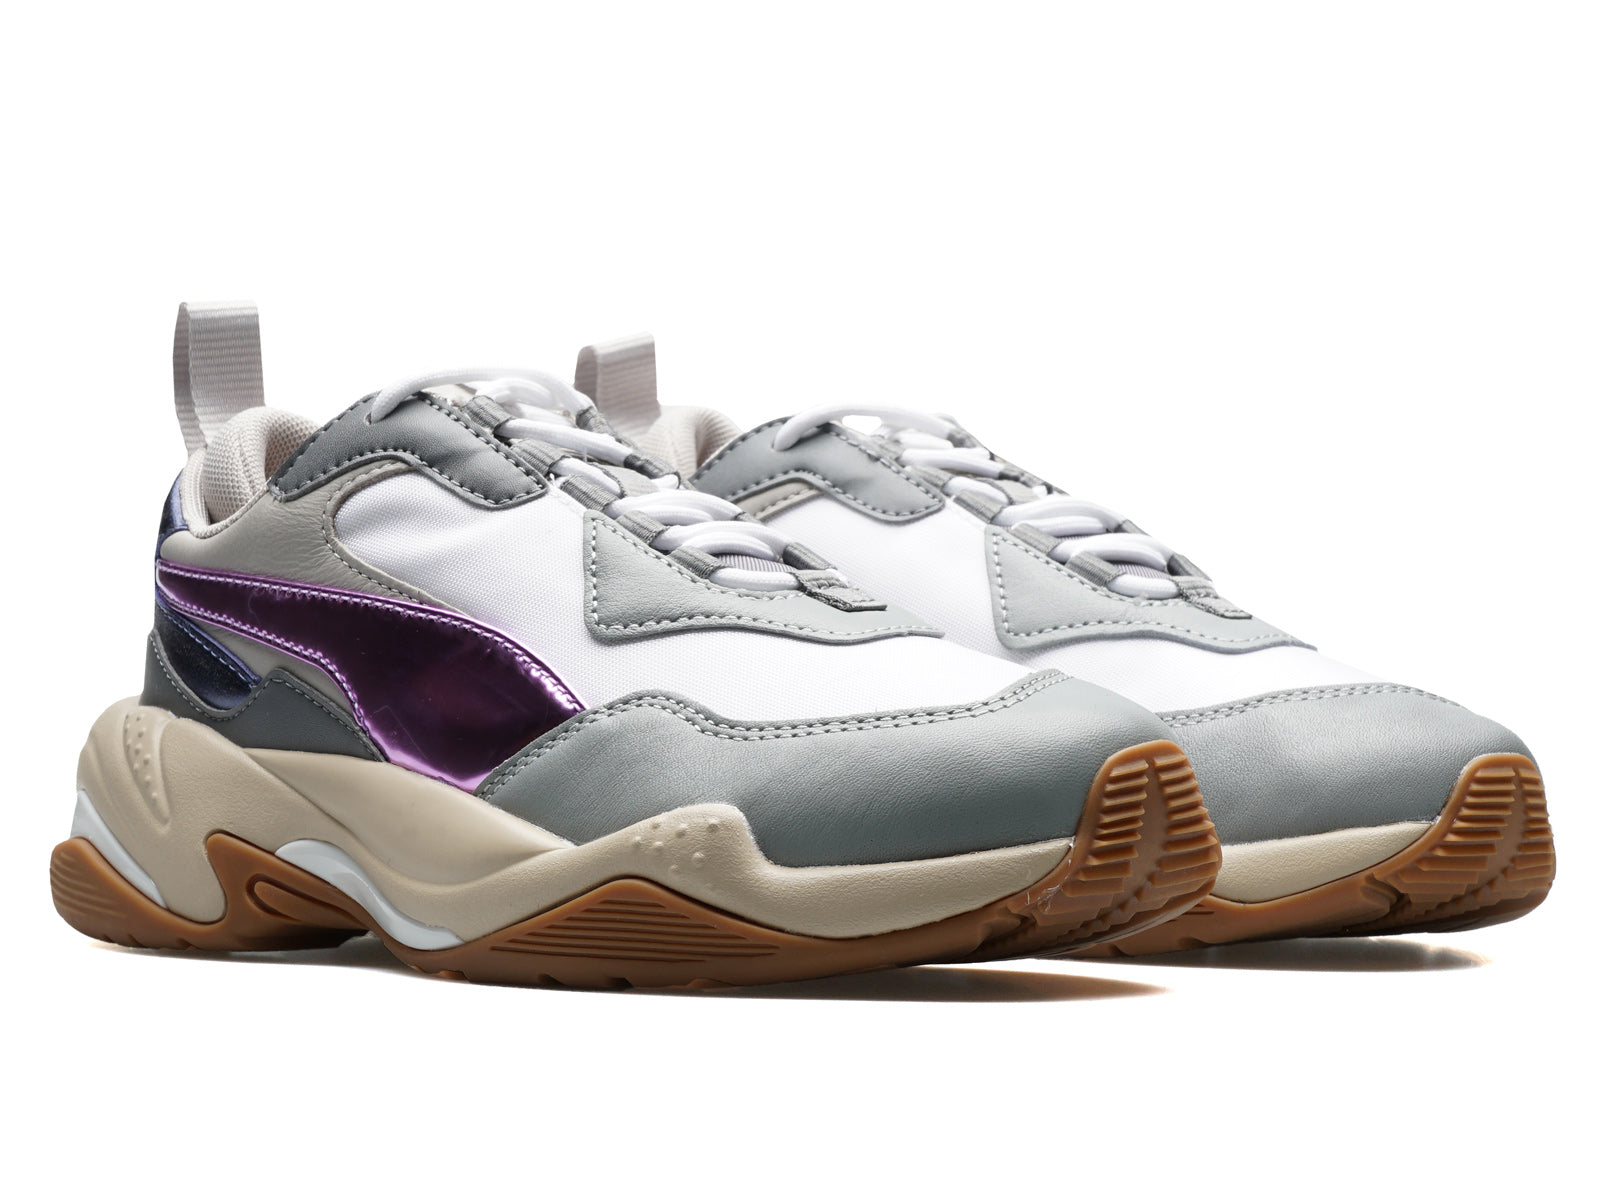 0d0c06e8d6c6 6 28 18  Women s Puma Thunder Electric – Bodega